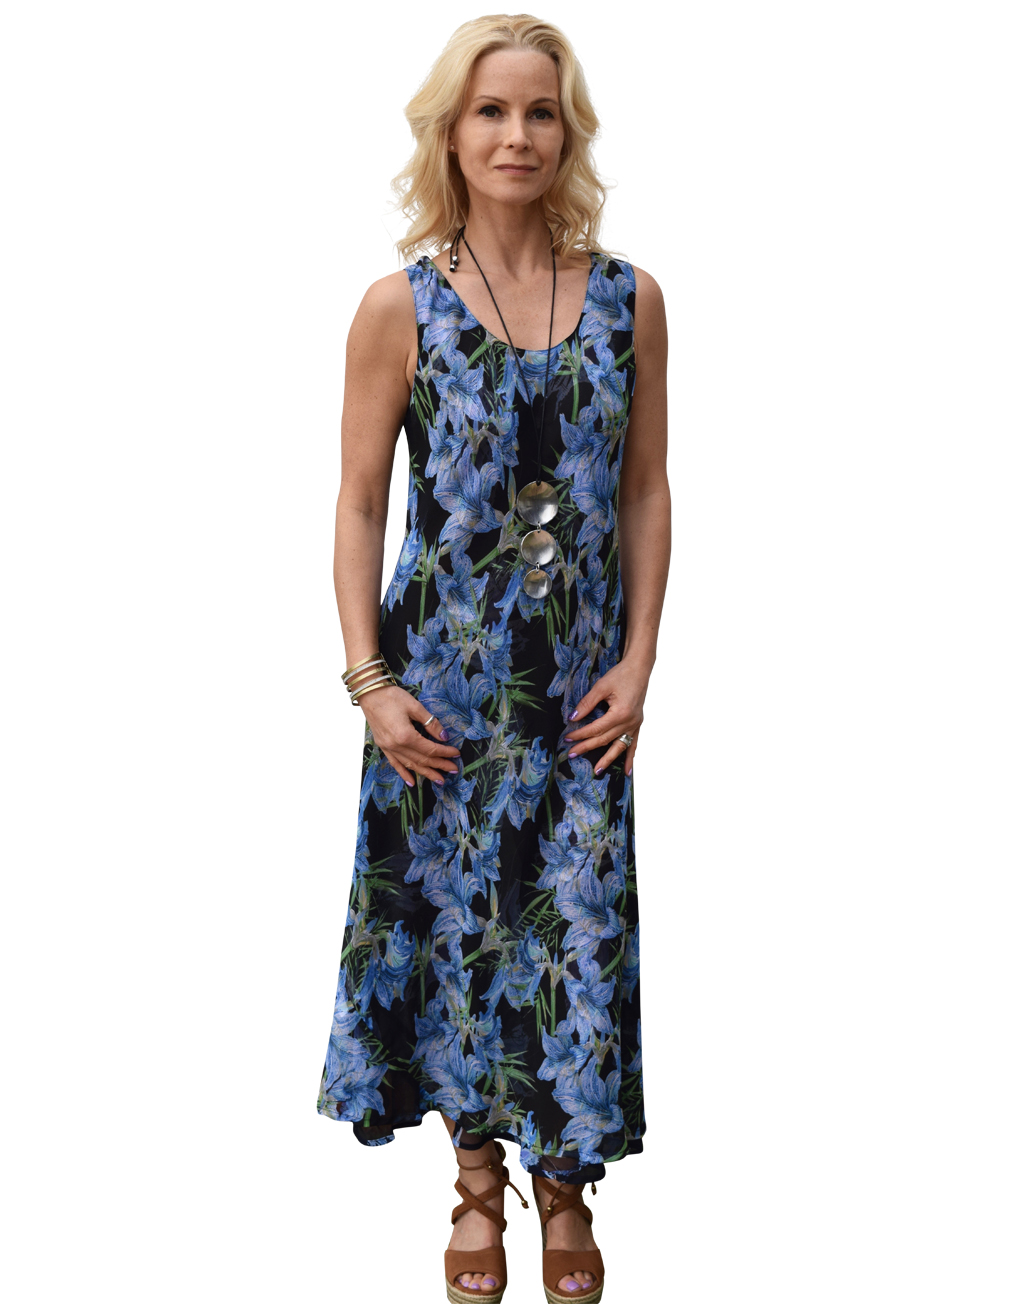 Paramour Reversible 2 in 1 dress5